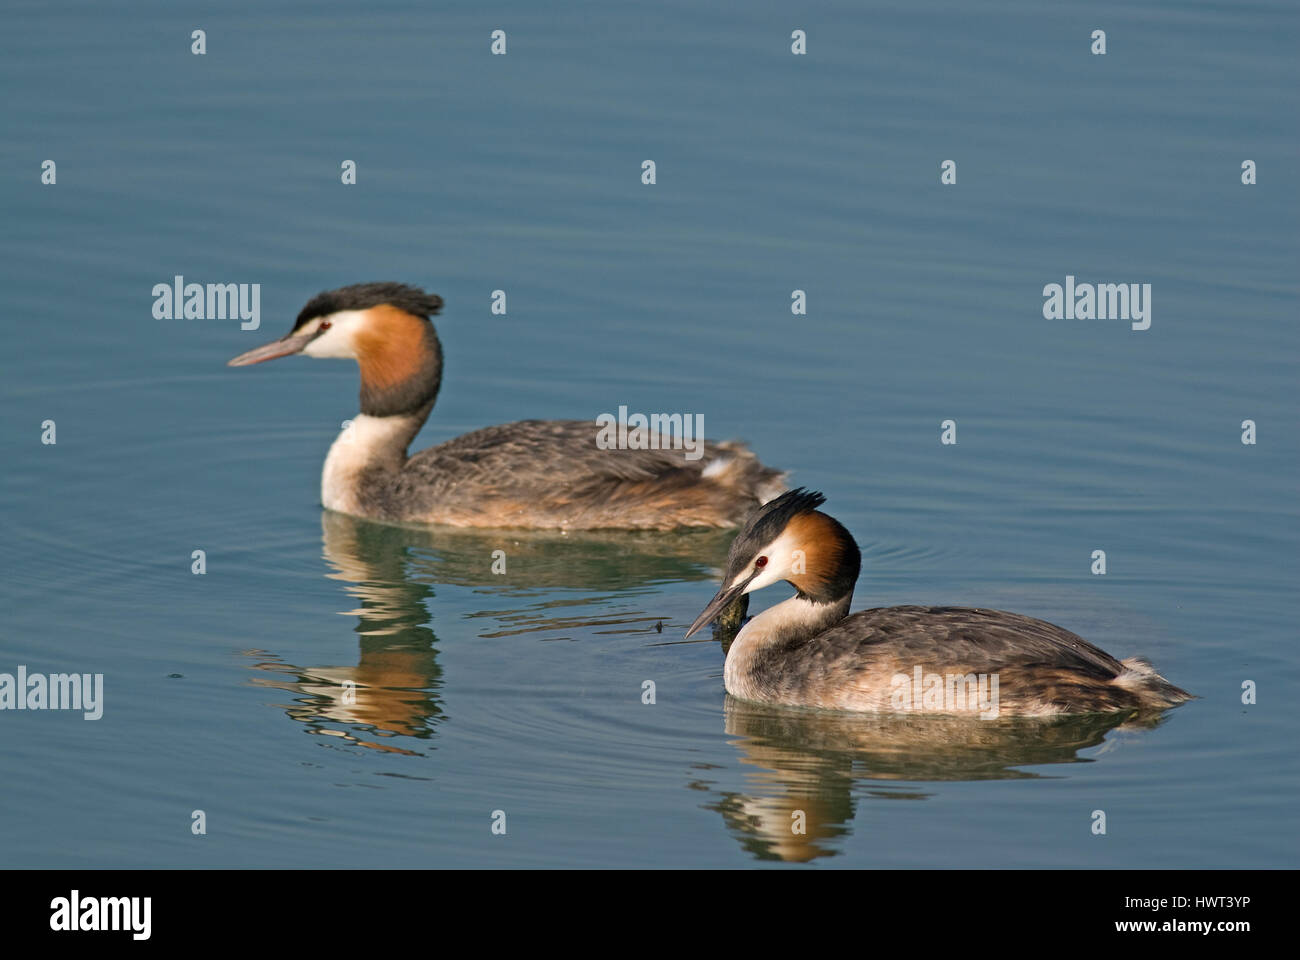 Couple of great crested grebes (Podiceps cristatus), courtship ritual, Lake Trasimeno, Umbria, Italy, Europe - Stock Image